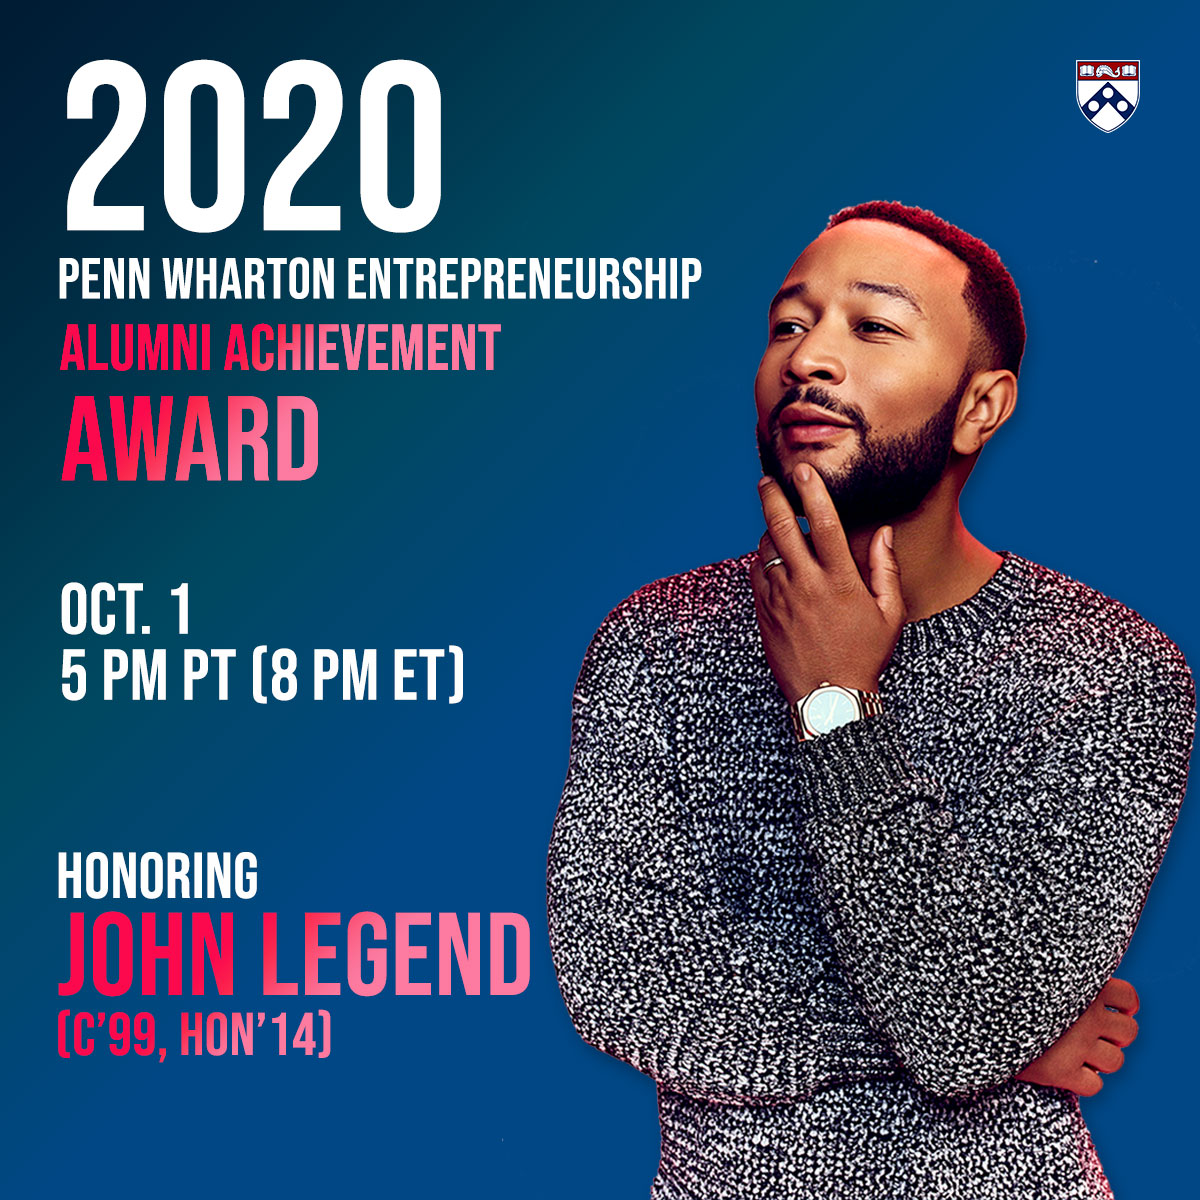 We're thrilled to honor @johnlegend (C'99 HON'14) w/ the 2020 @Penn @Wharton Entrepreneurship Alumni Achievement Award! Join our live event to hear John speak about his career and impact in education, social justice, & music on 10/1 for the Penn community: https://t.co/l0Jx1tSjPU https://t.co/ABHUhQP8TG